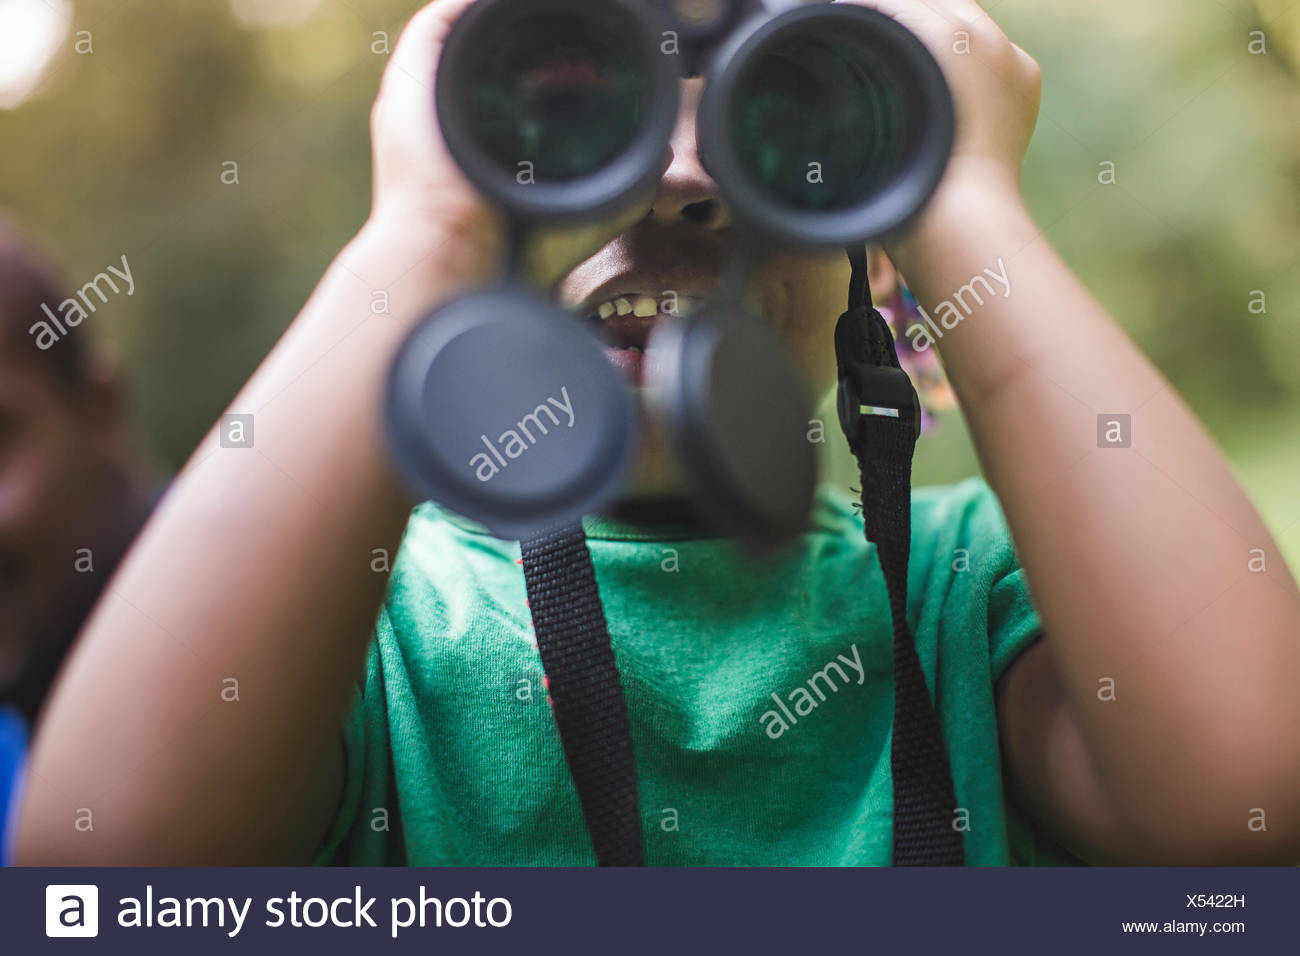 Close up of girl looking through binoculars in forest eco camp - Stock Image